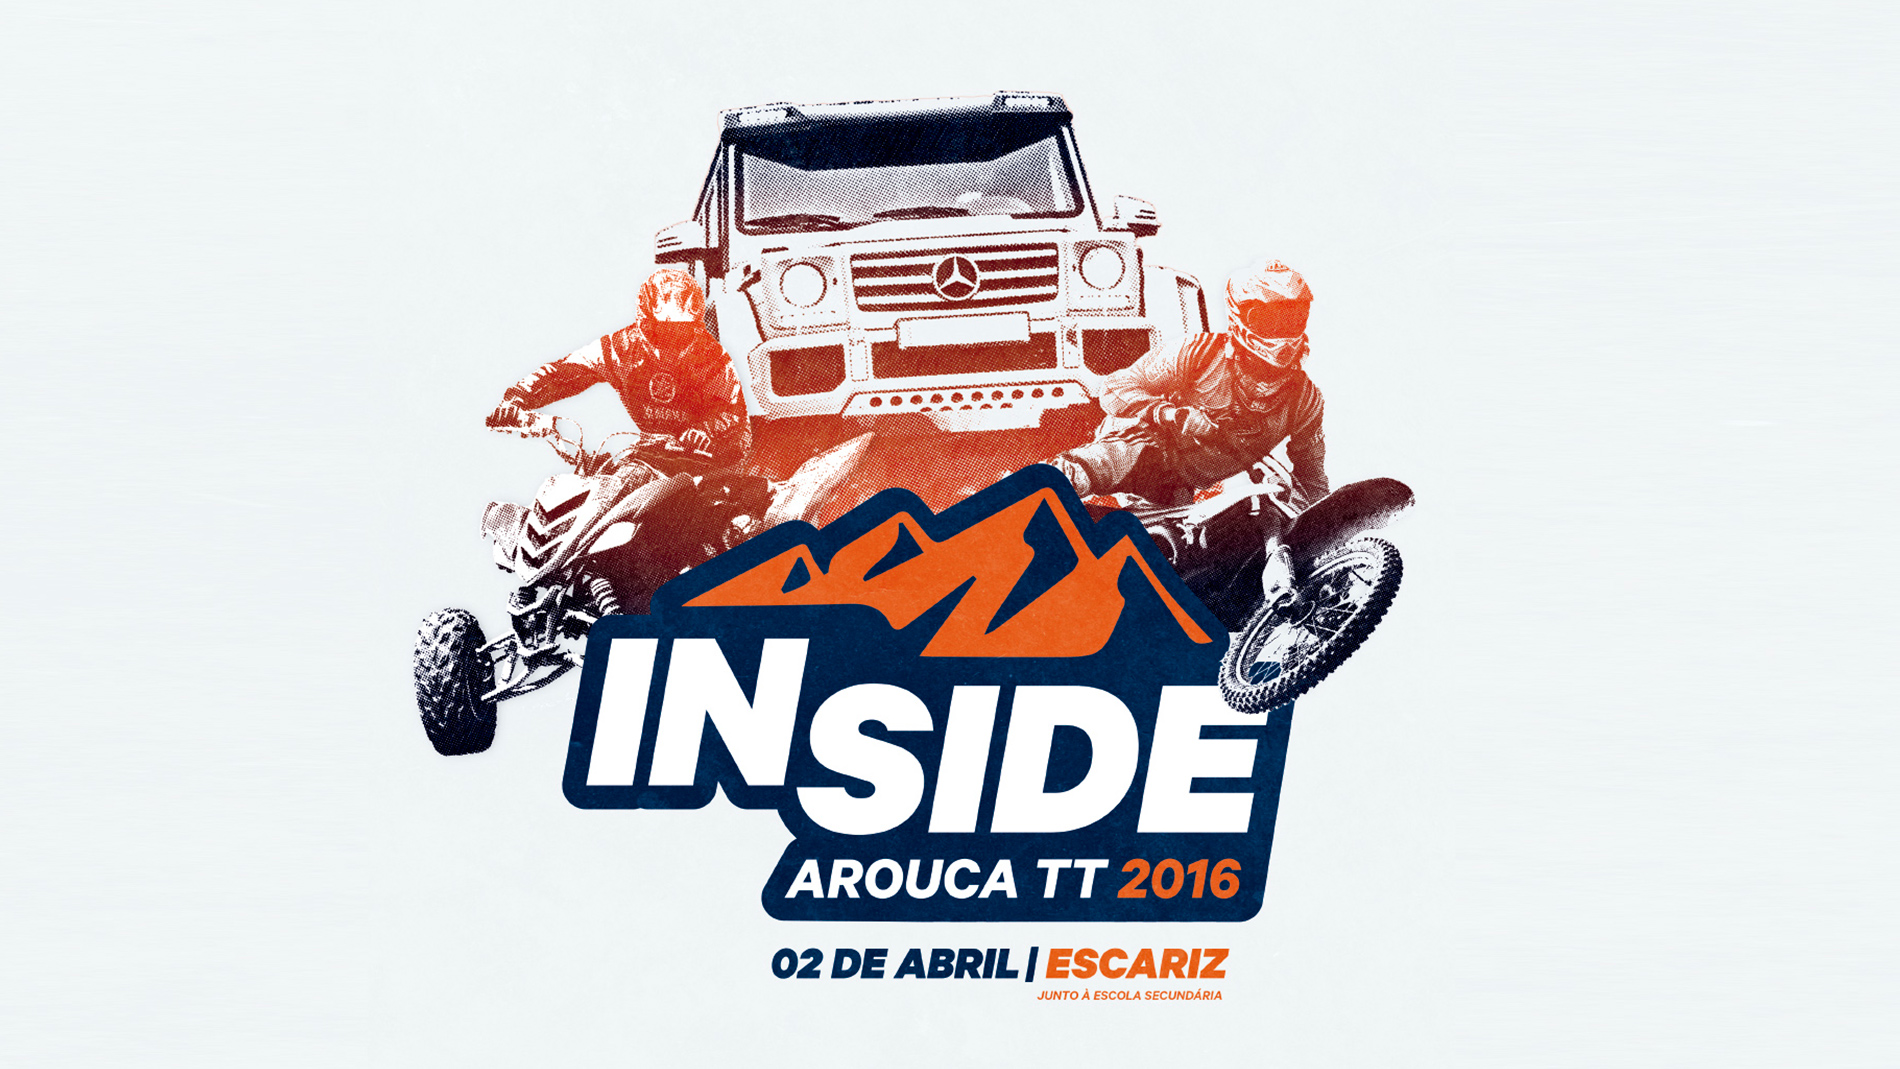 Inside Arouca TT 2016